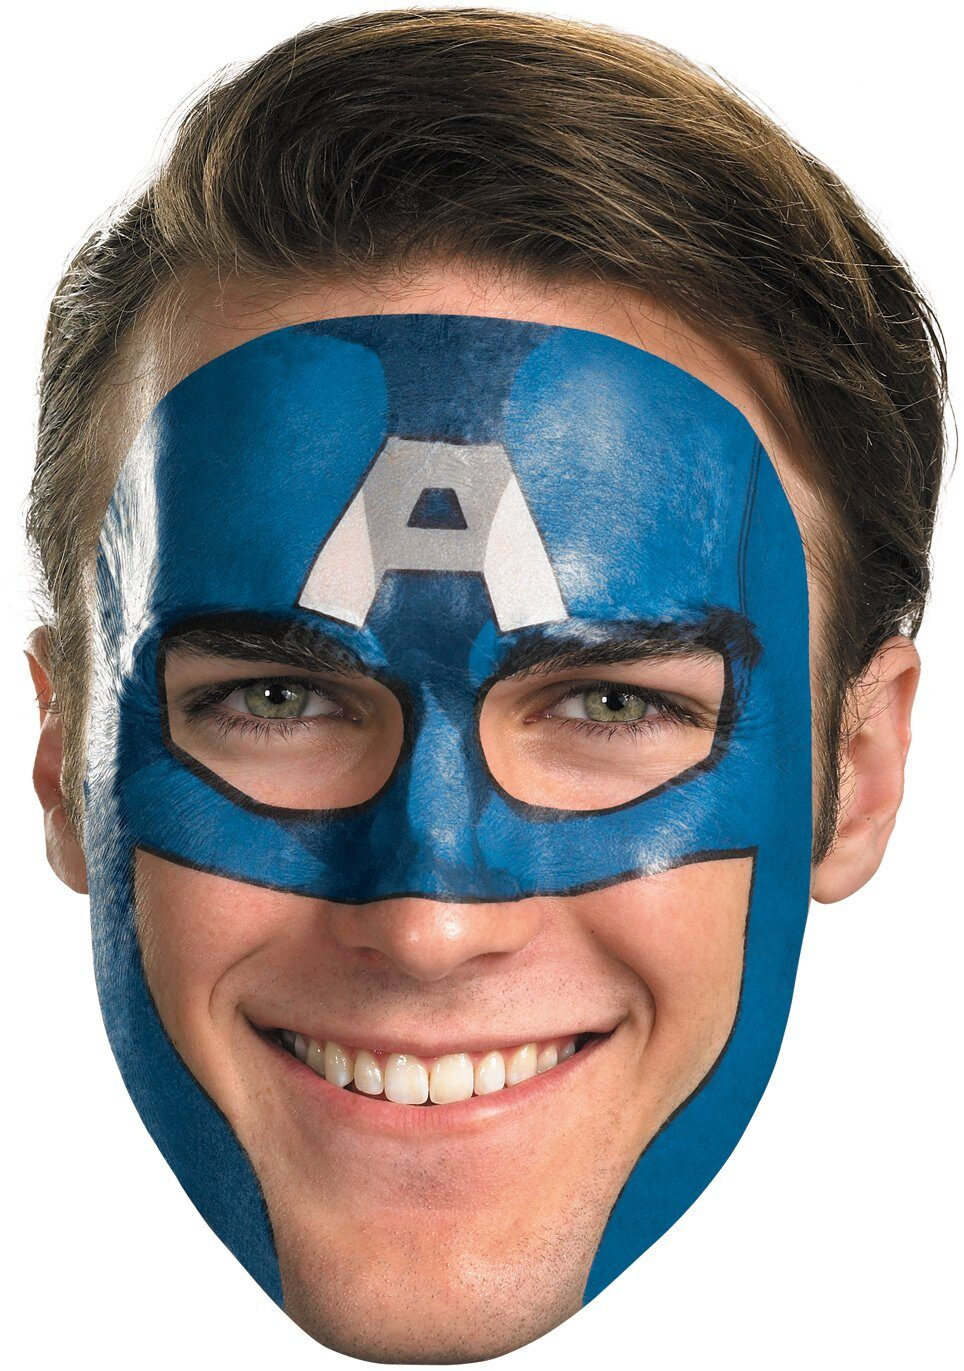 Super Scary Halloween Costumes For Boys